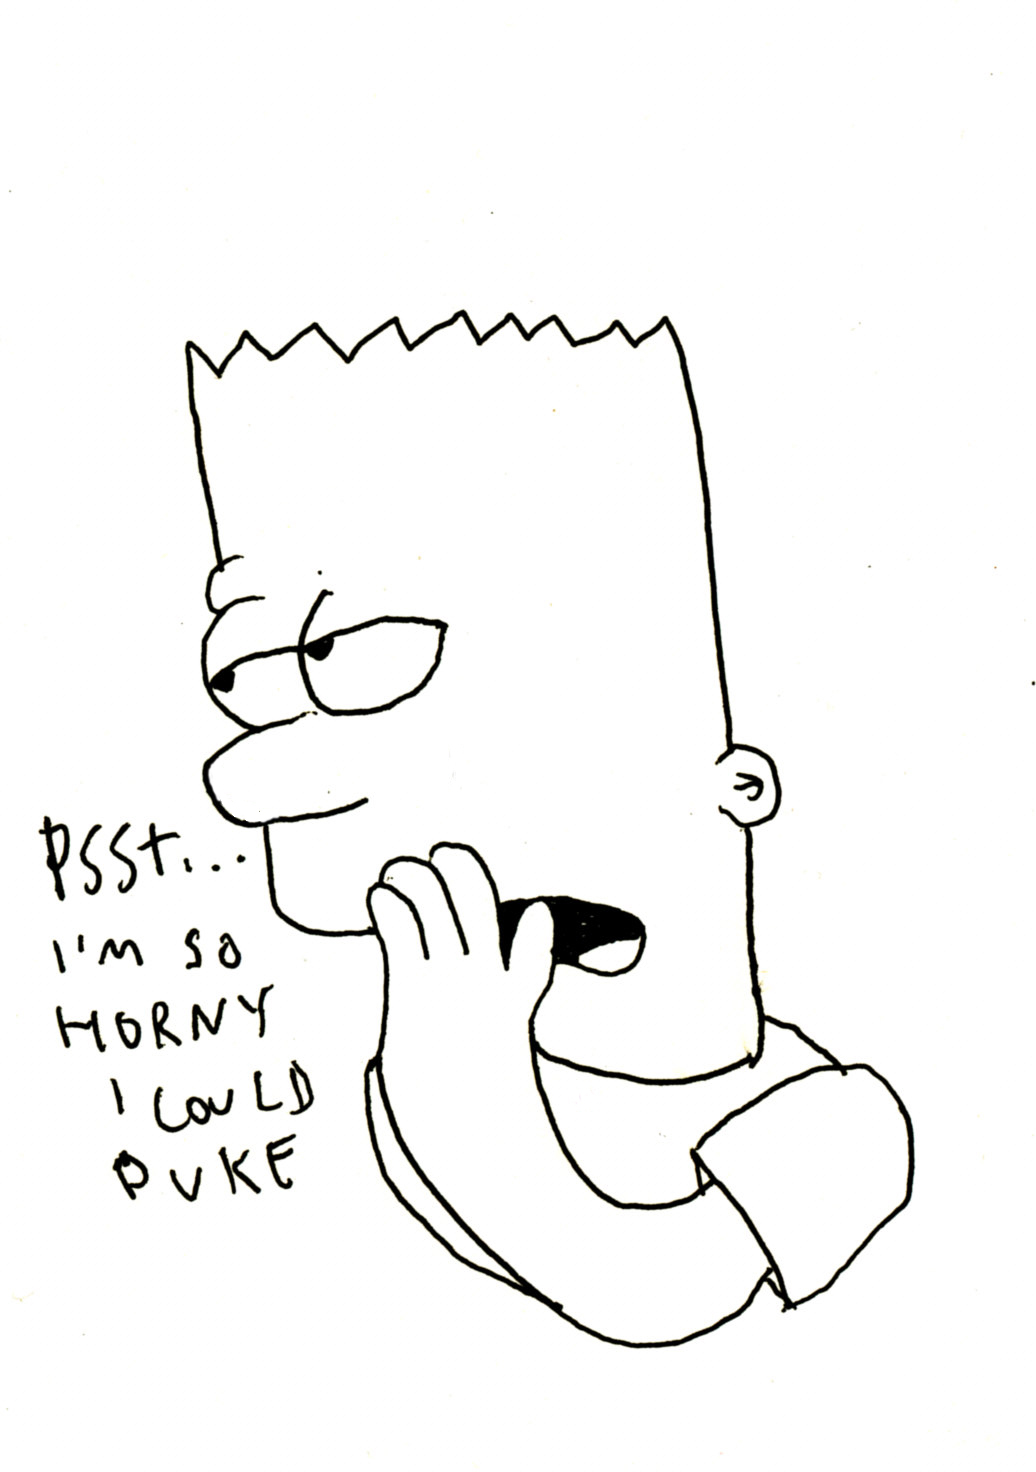 bart simpson tells it like it is